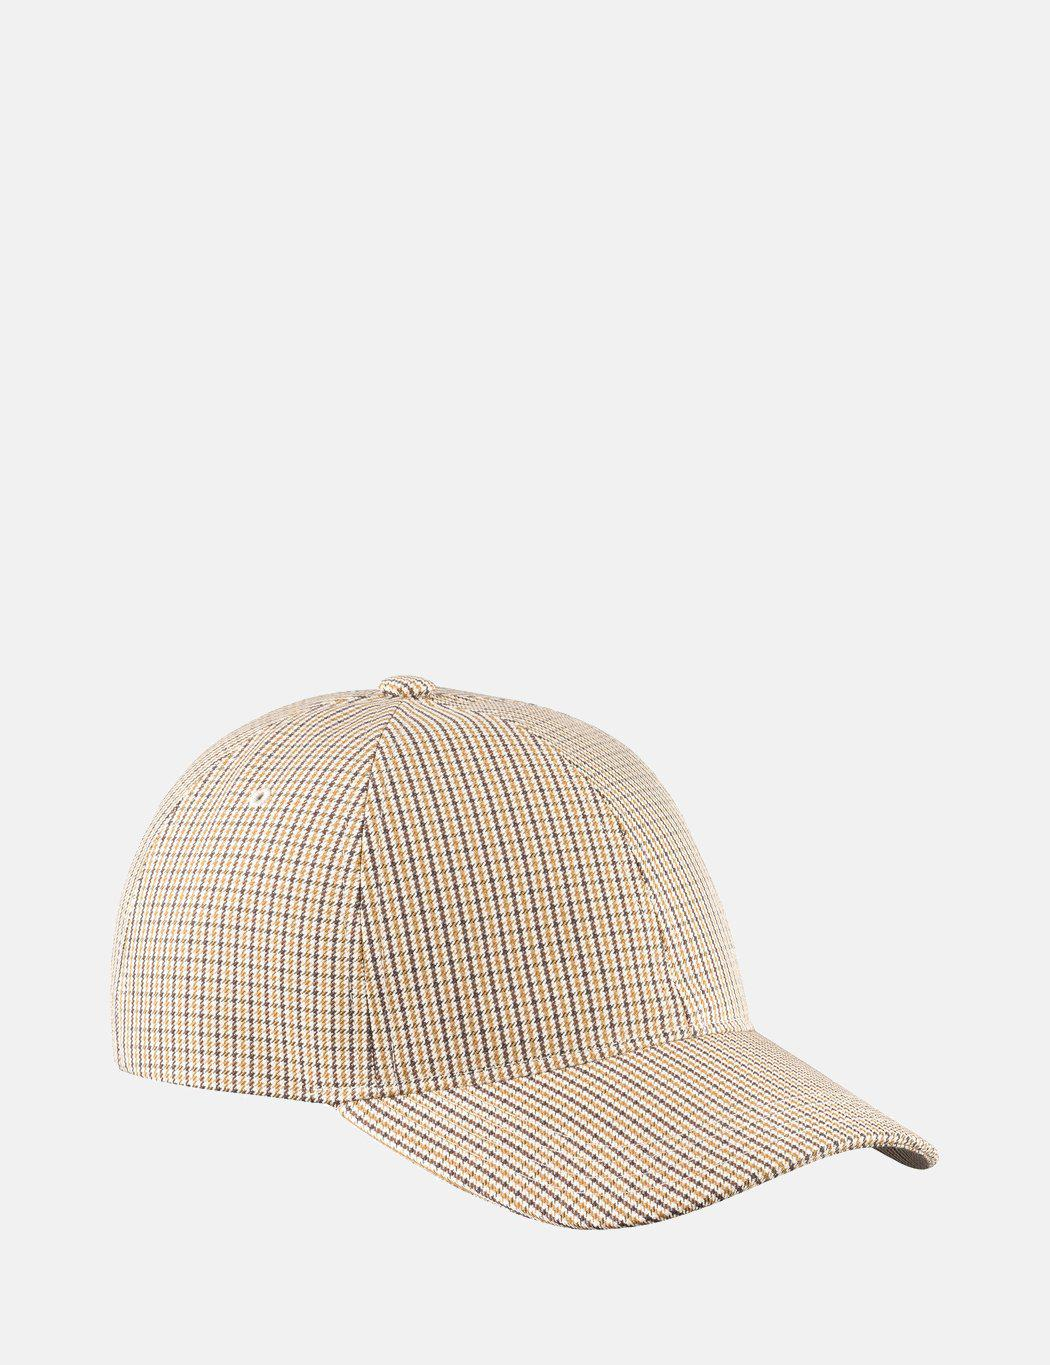 641ef08da15 A.P.C. Casquette Alex Cap in Natural for Men - Lyst